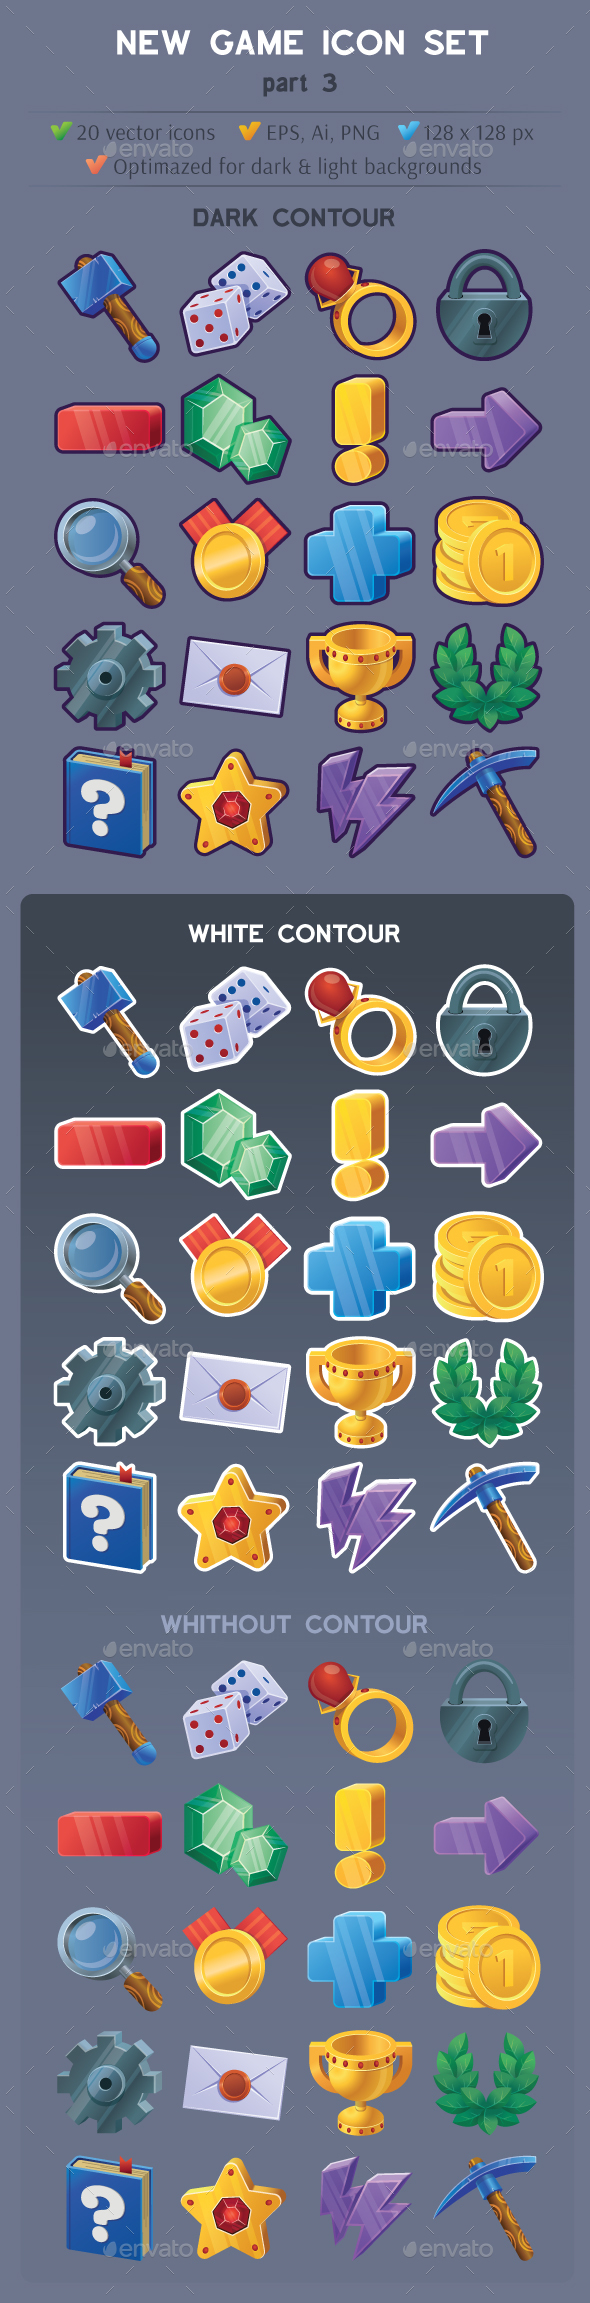 GraphicRiver Game Icon Set Part 3 21159388